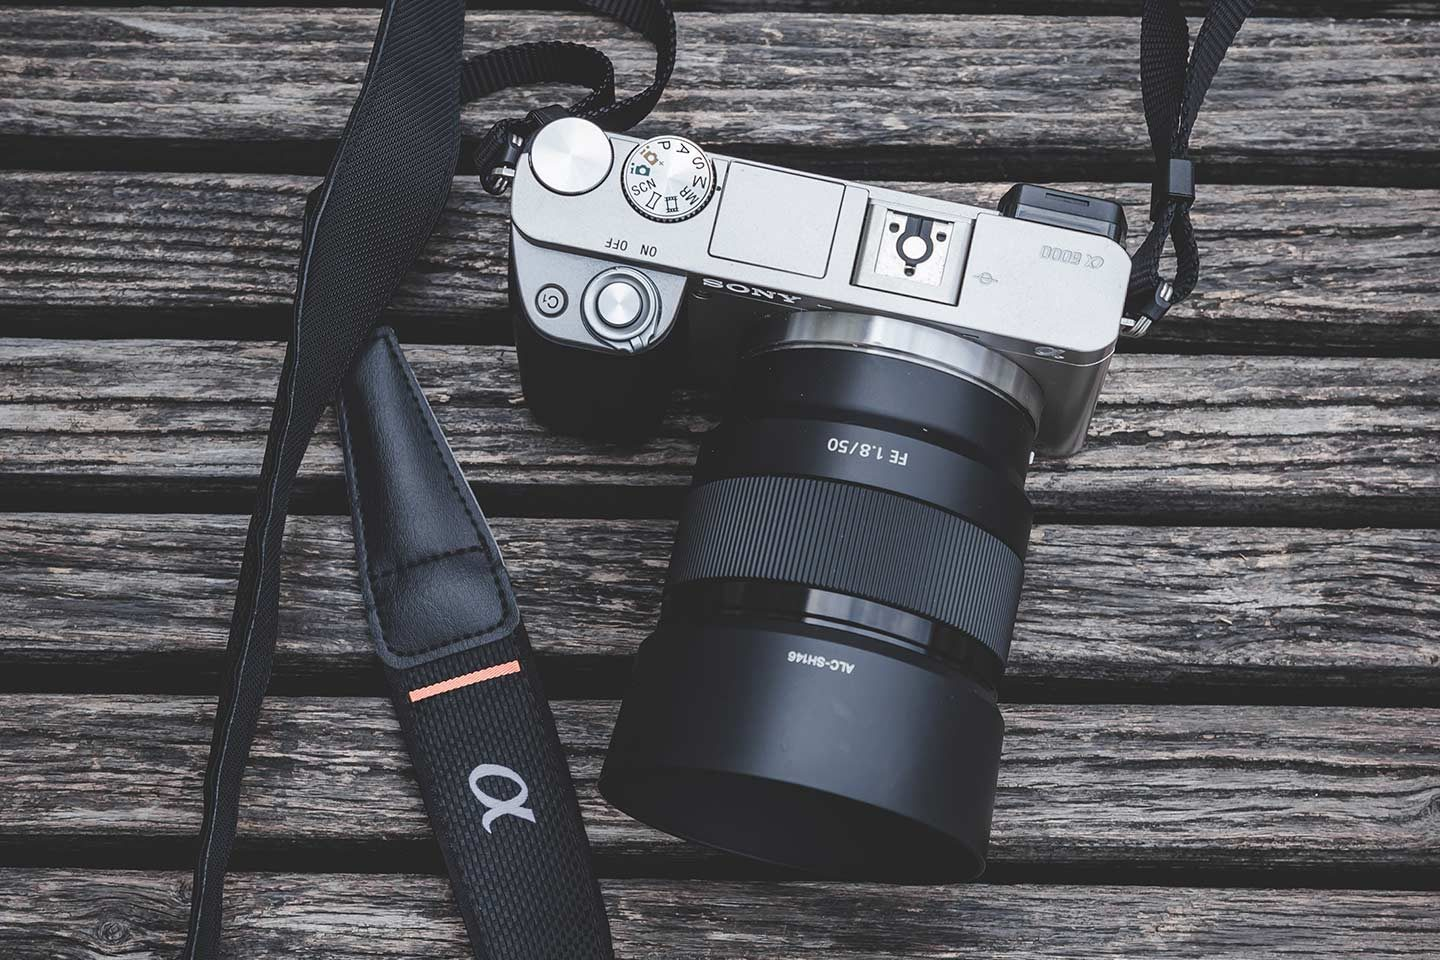 A Sony mirrorless camera on top of a wooden background. Sony's range of mirrorless cameras are a great choice if you're looking for the best camera for astrophotography.